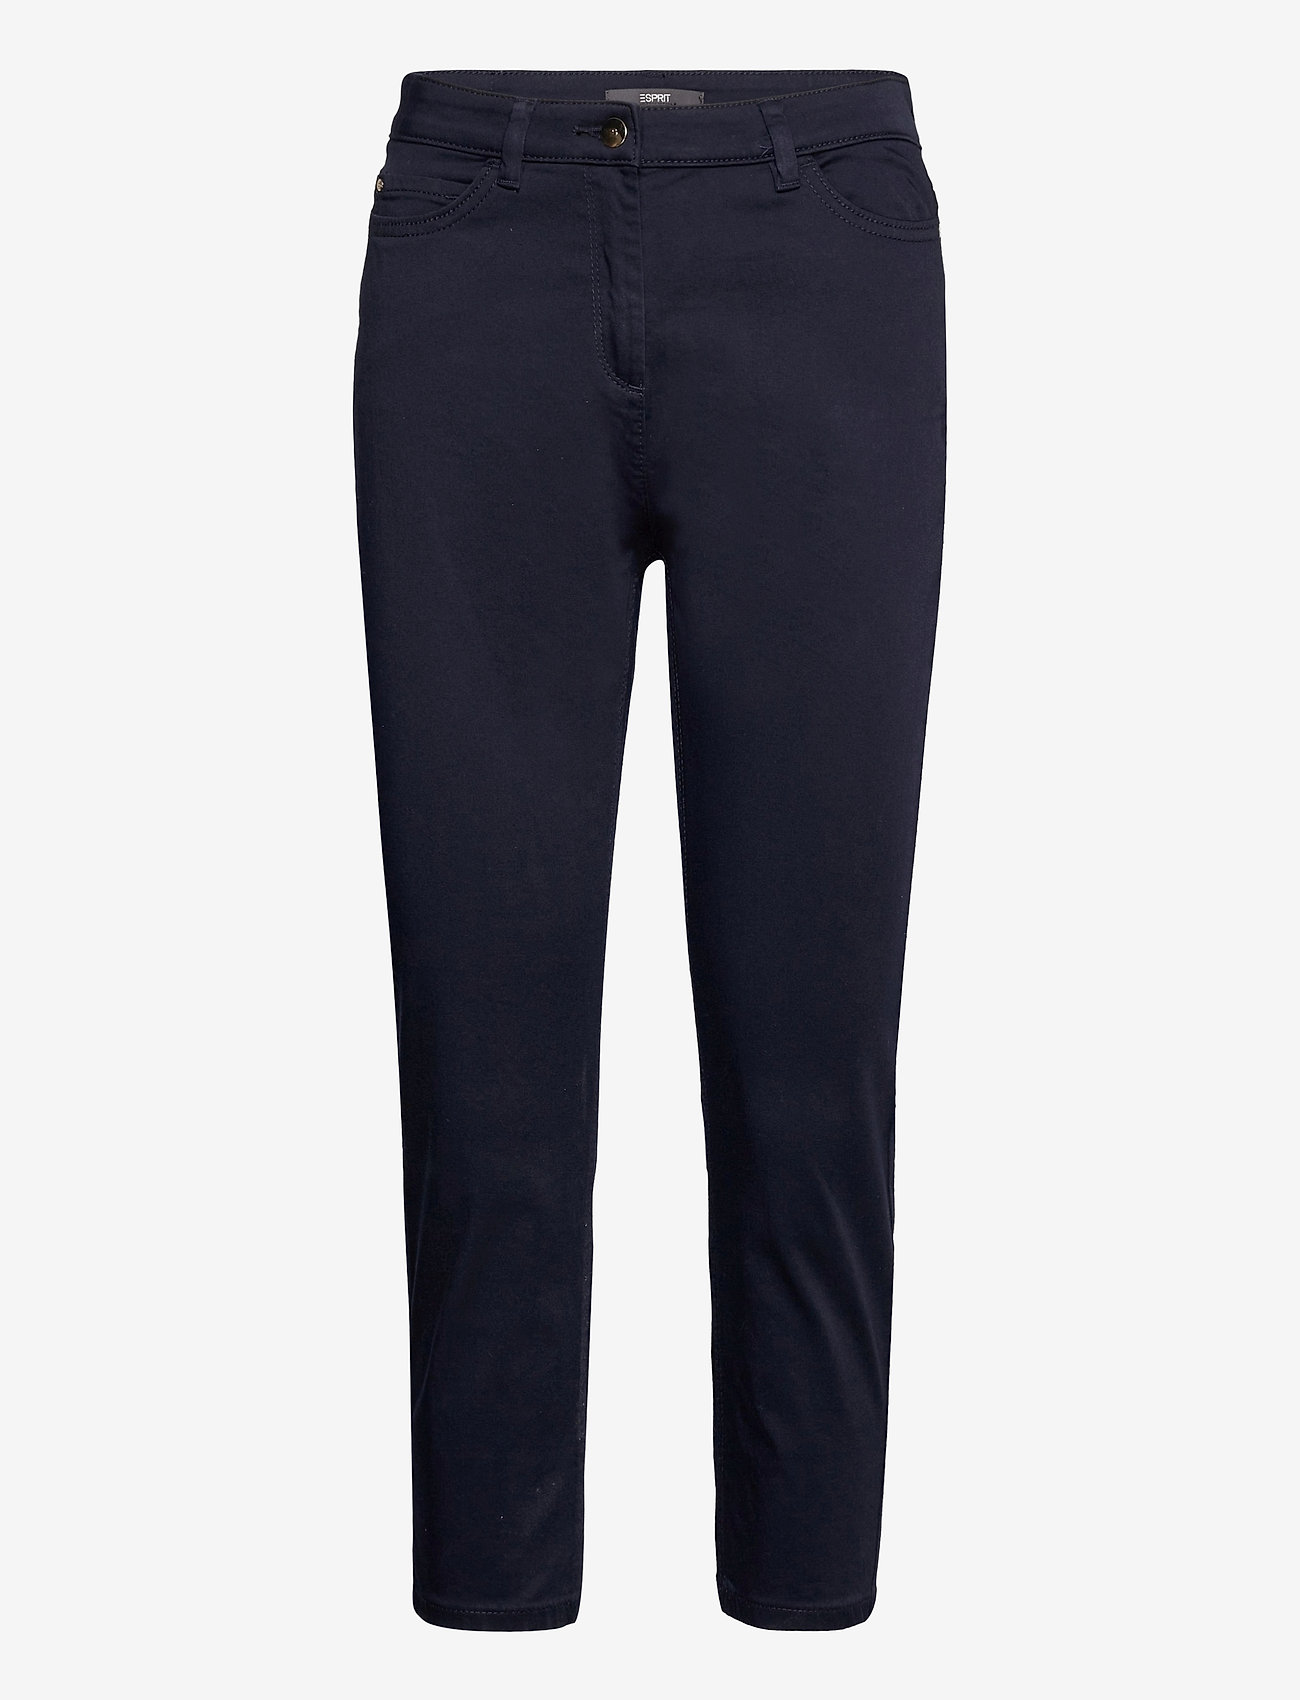 Esprit Collection - Pants woven - chinos - navy - 0